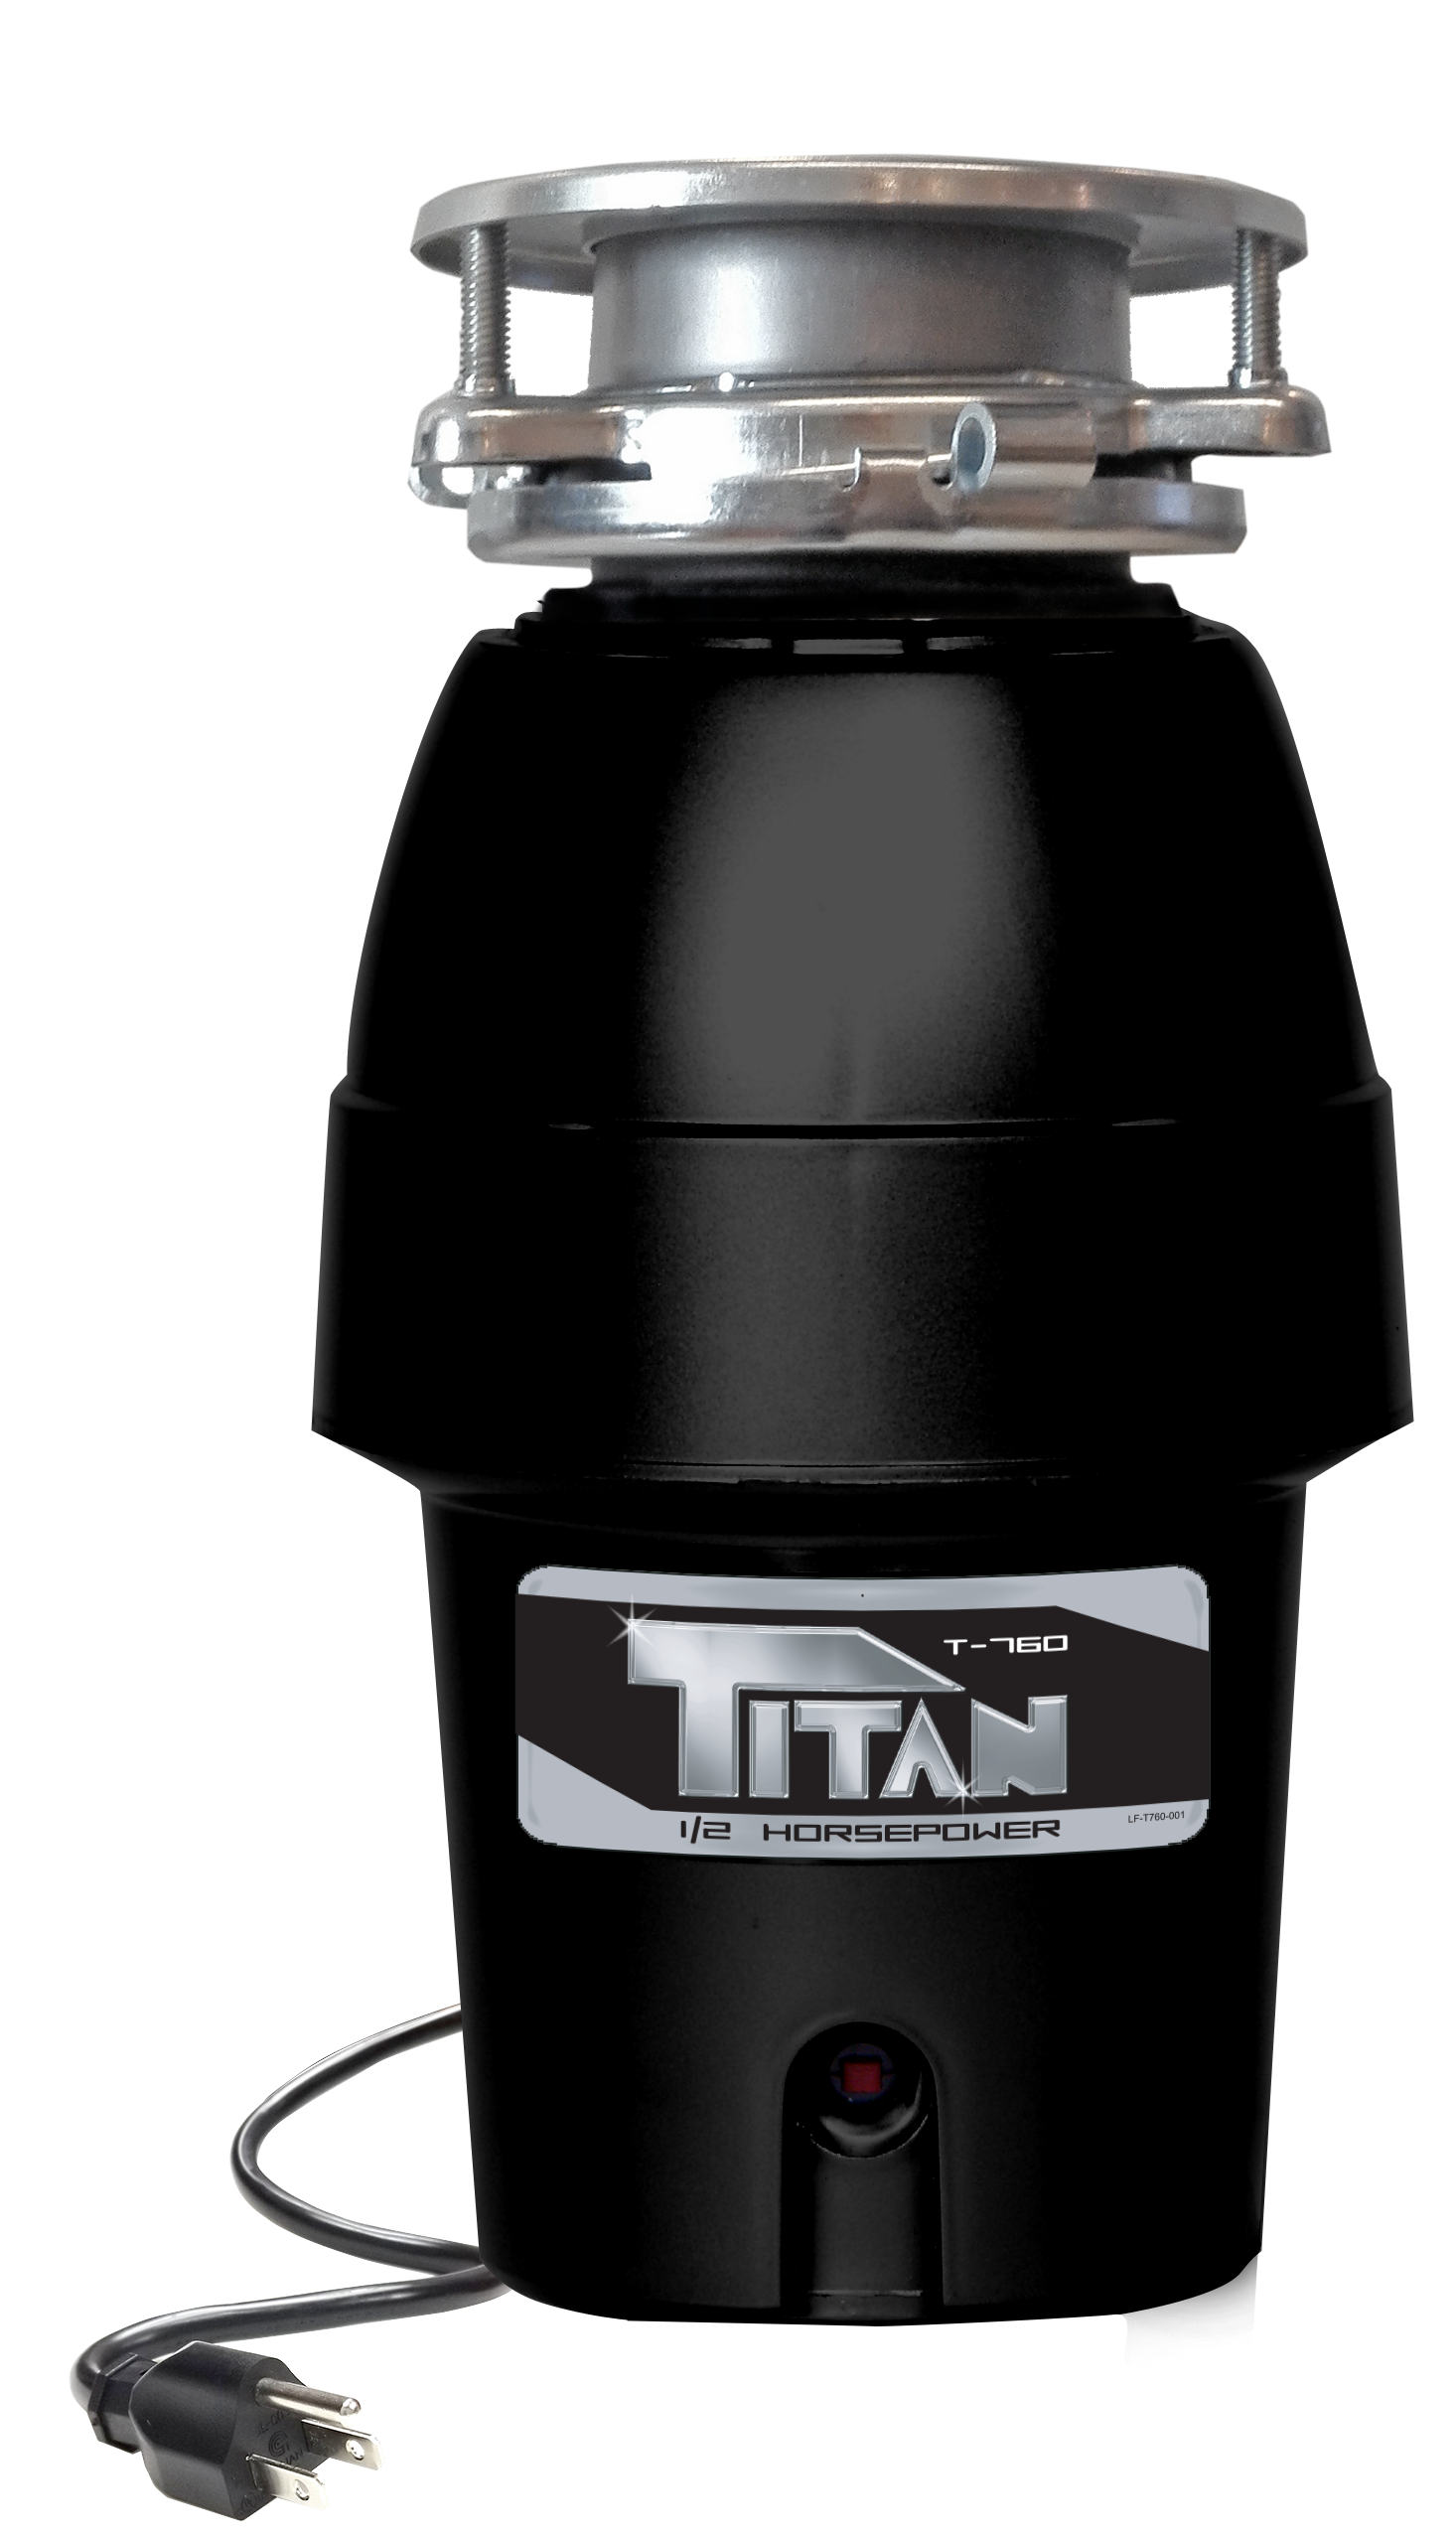 Titan Garbage Disposals Model T-760